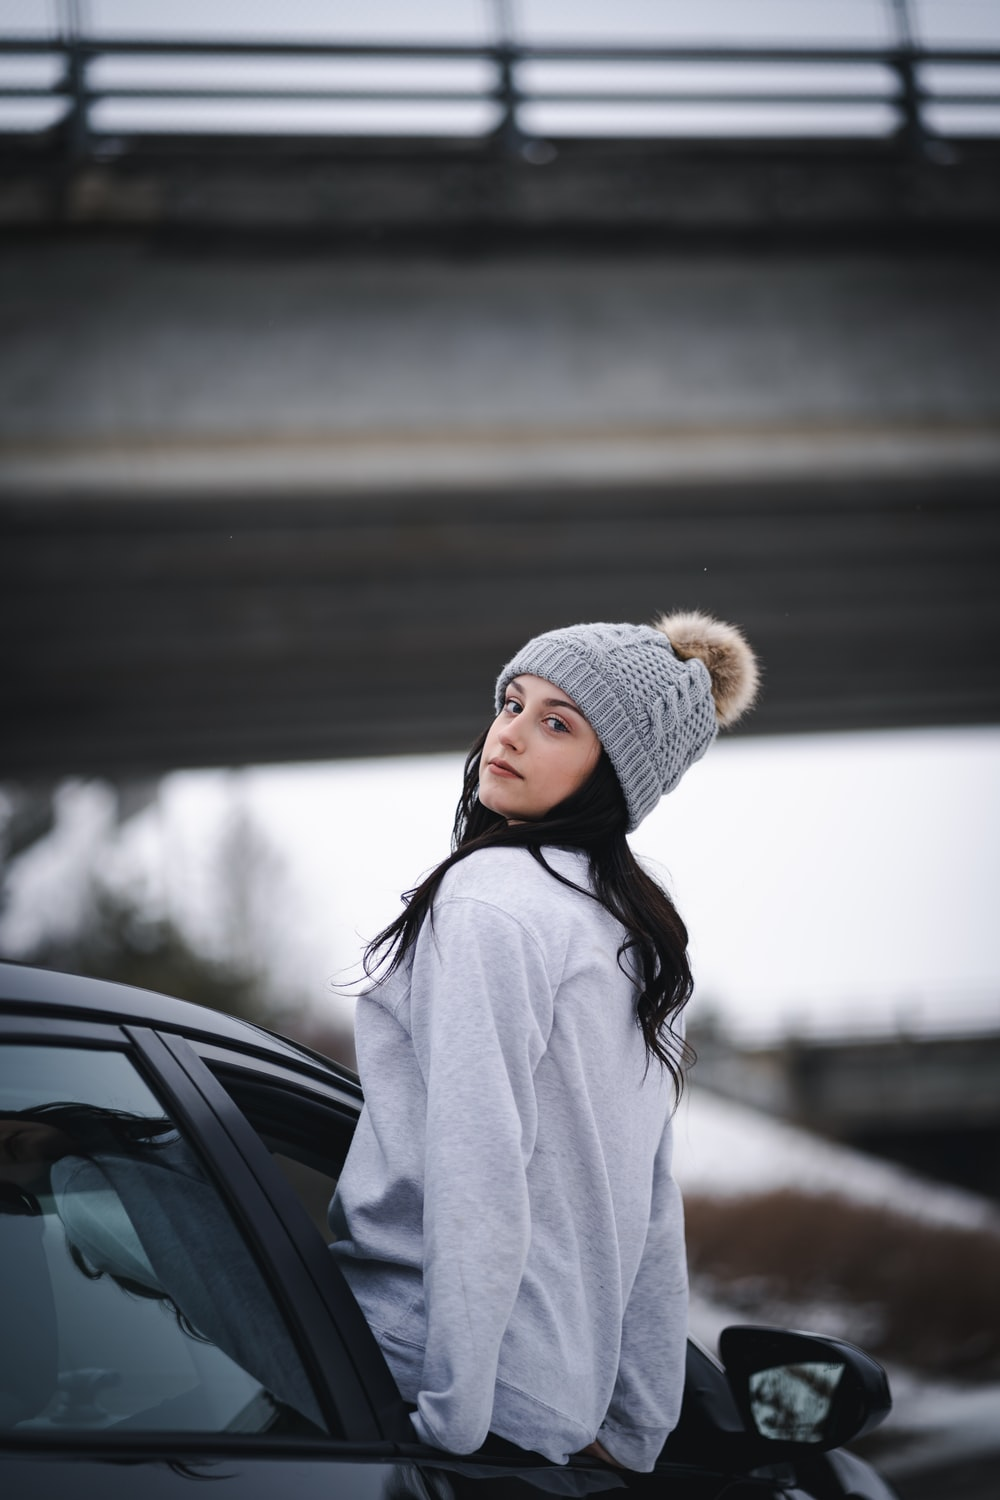 woman in white knit cap and white coat standing beside black car during daytime